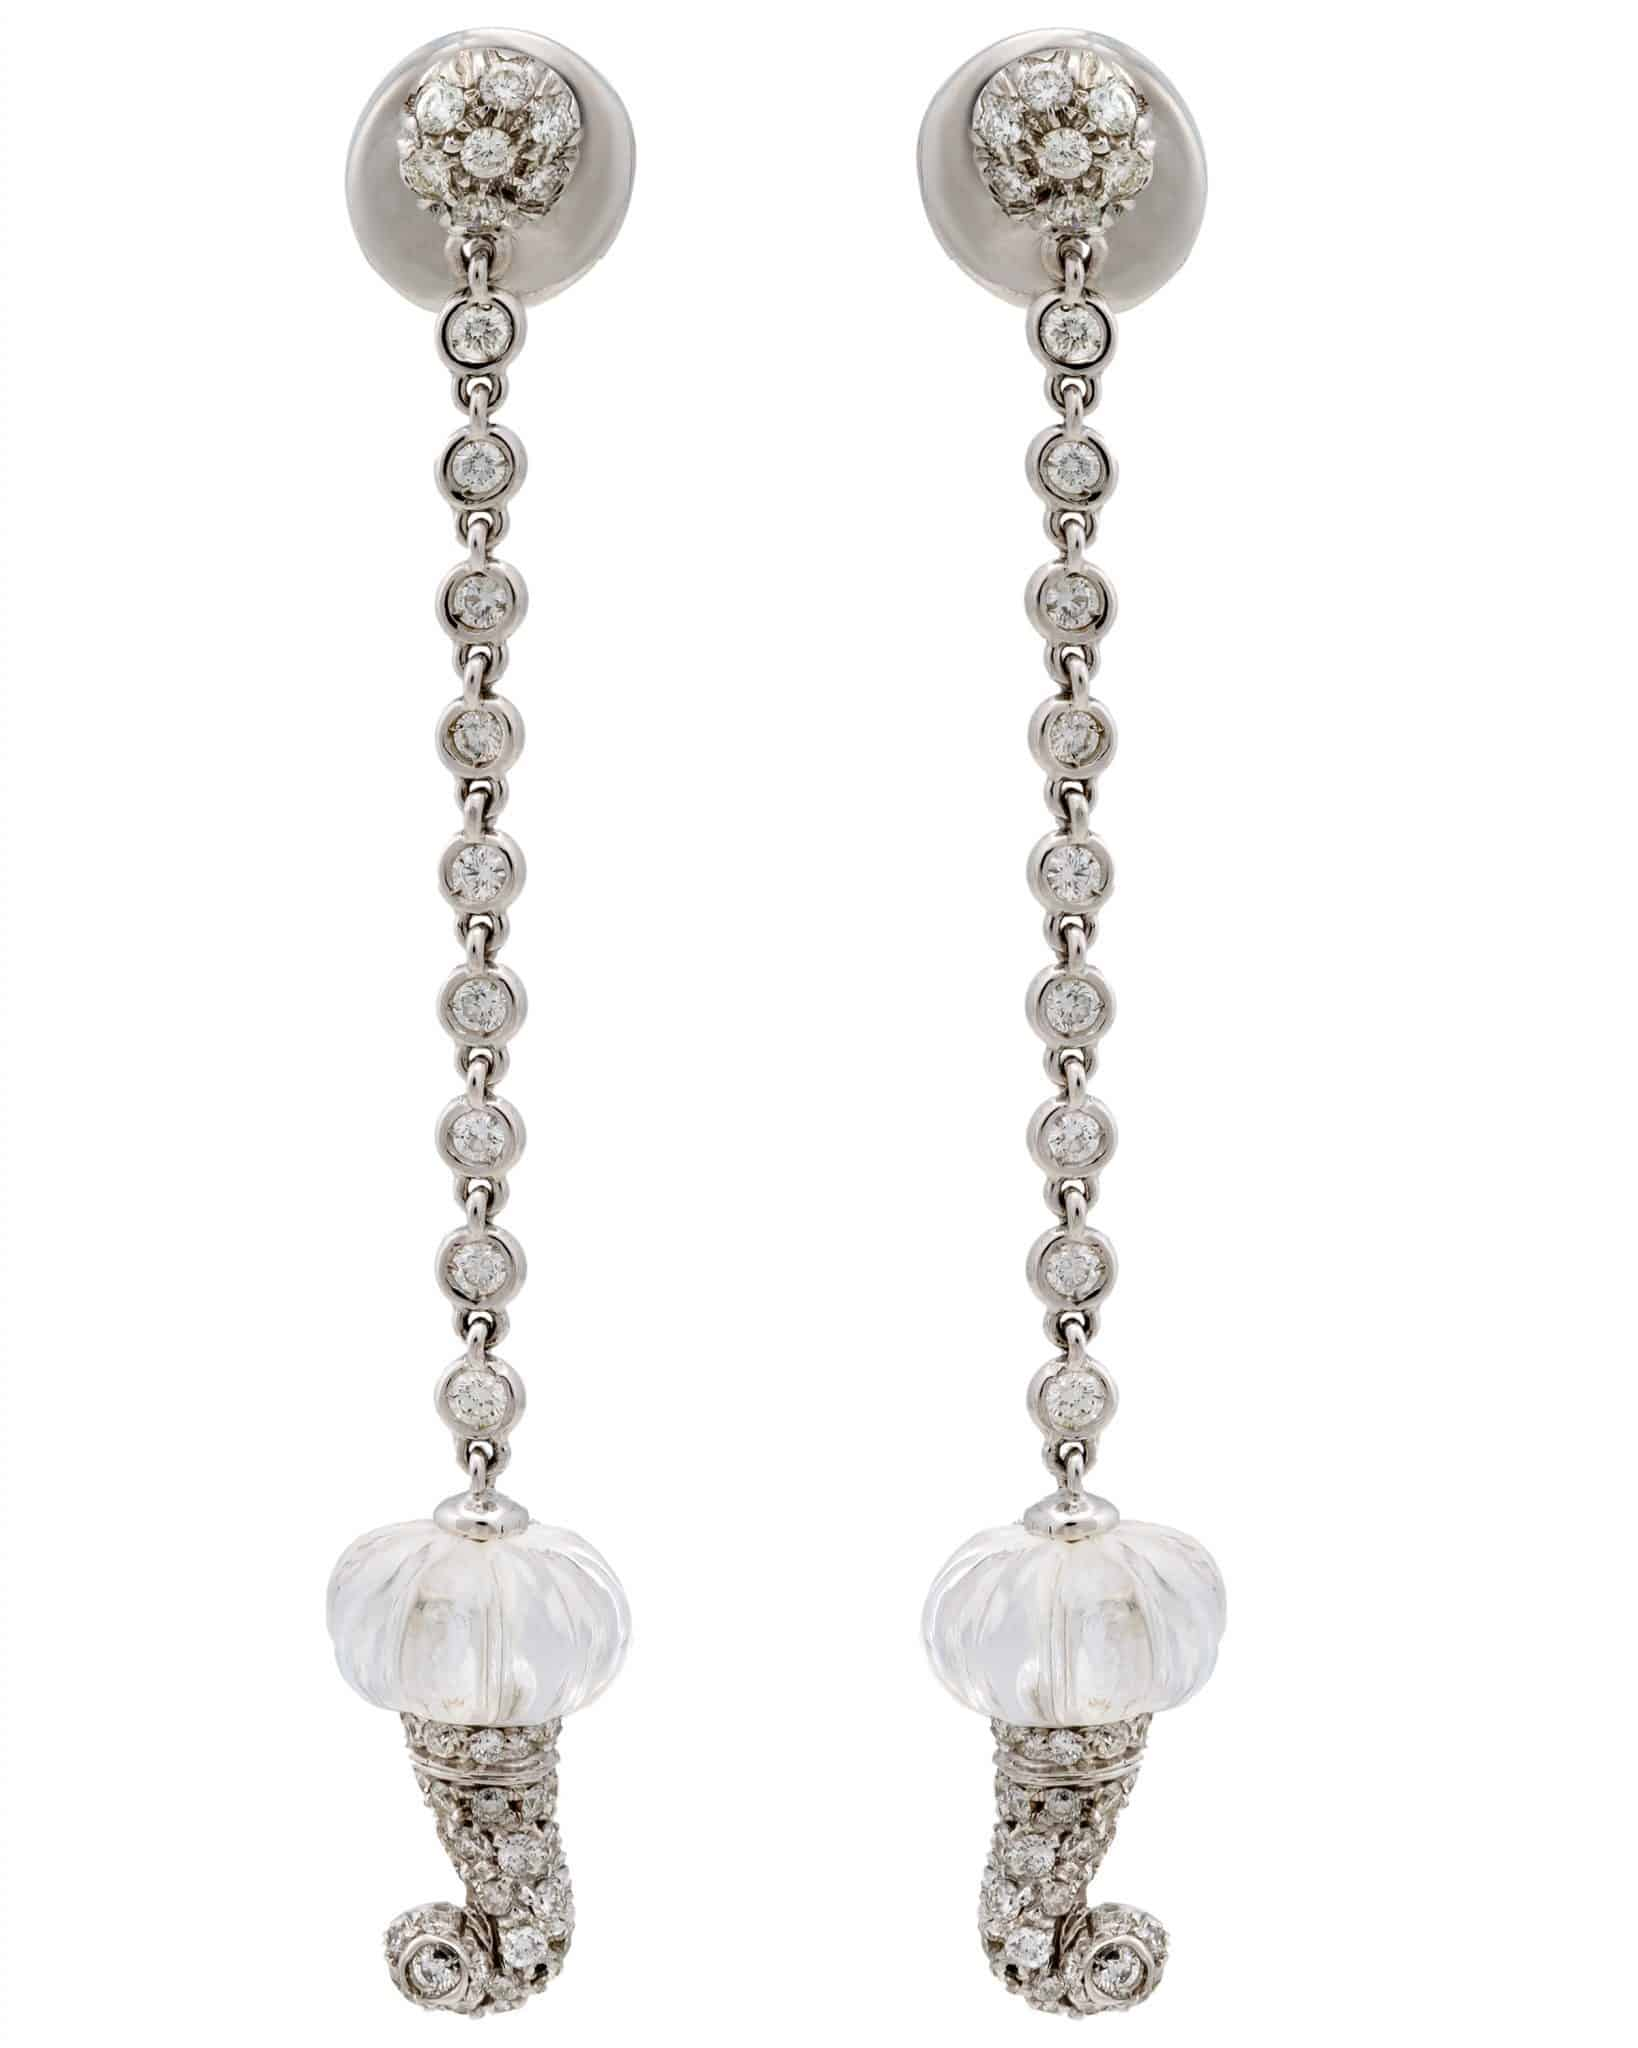 Chantecler 18K White Gold Contemporary Crystal & Diamond Earrings – 61836